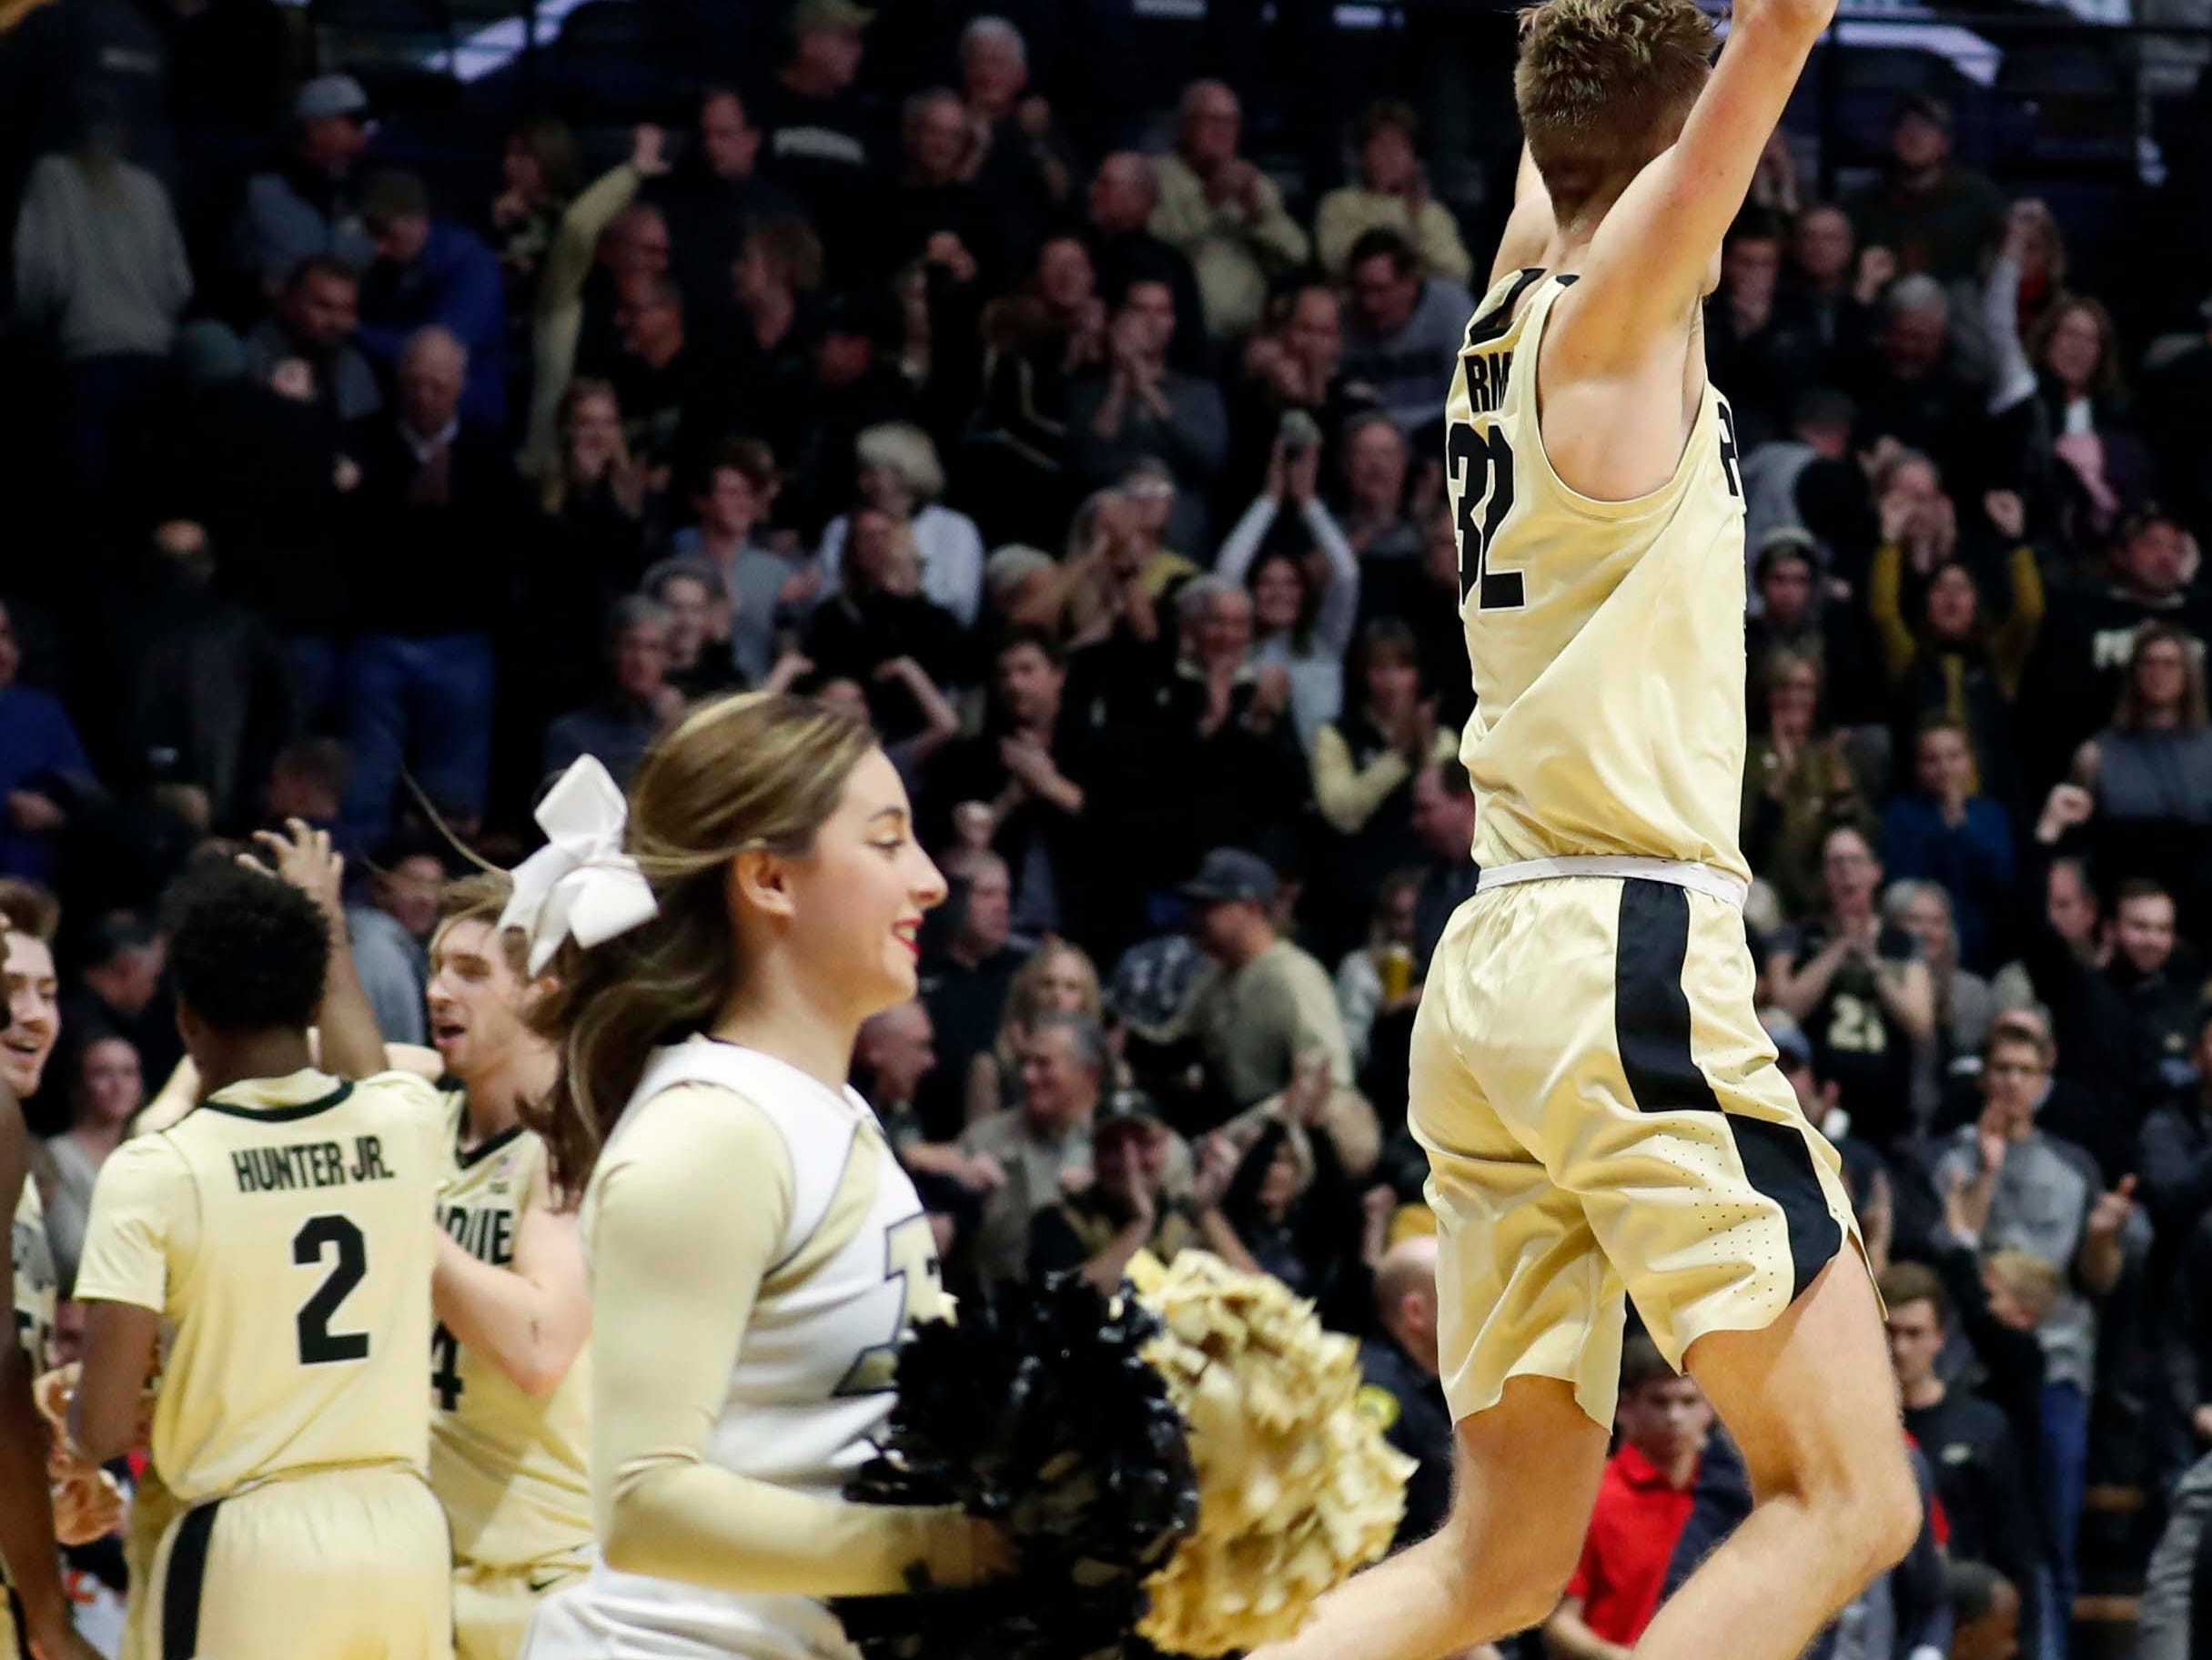 Dec 6, 2018; West Lafayette, IN, USA; Purdue Boilermakers center Matt Haarms (32) reacts after the game to Purdue winning against the Maryland Terrapins at Mackey Arena. Mandatory Credit: Brian Spurlock-USA TODAY Sports